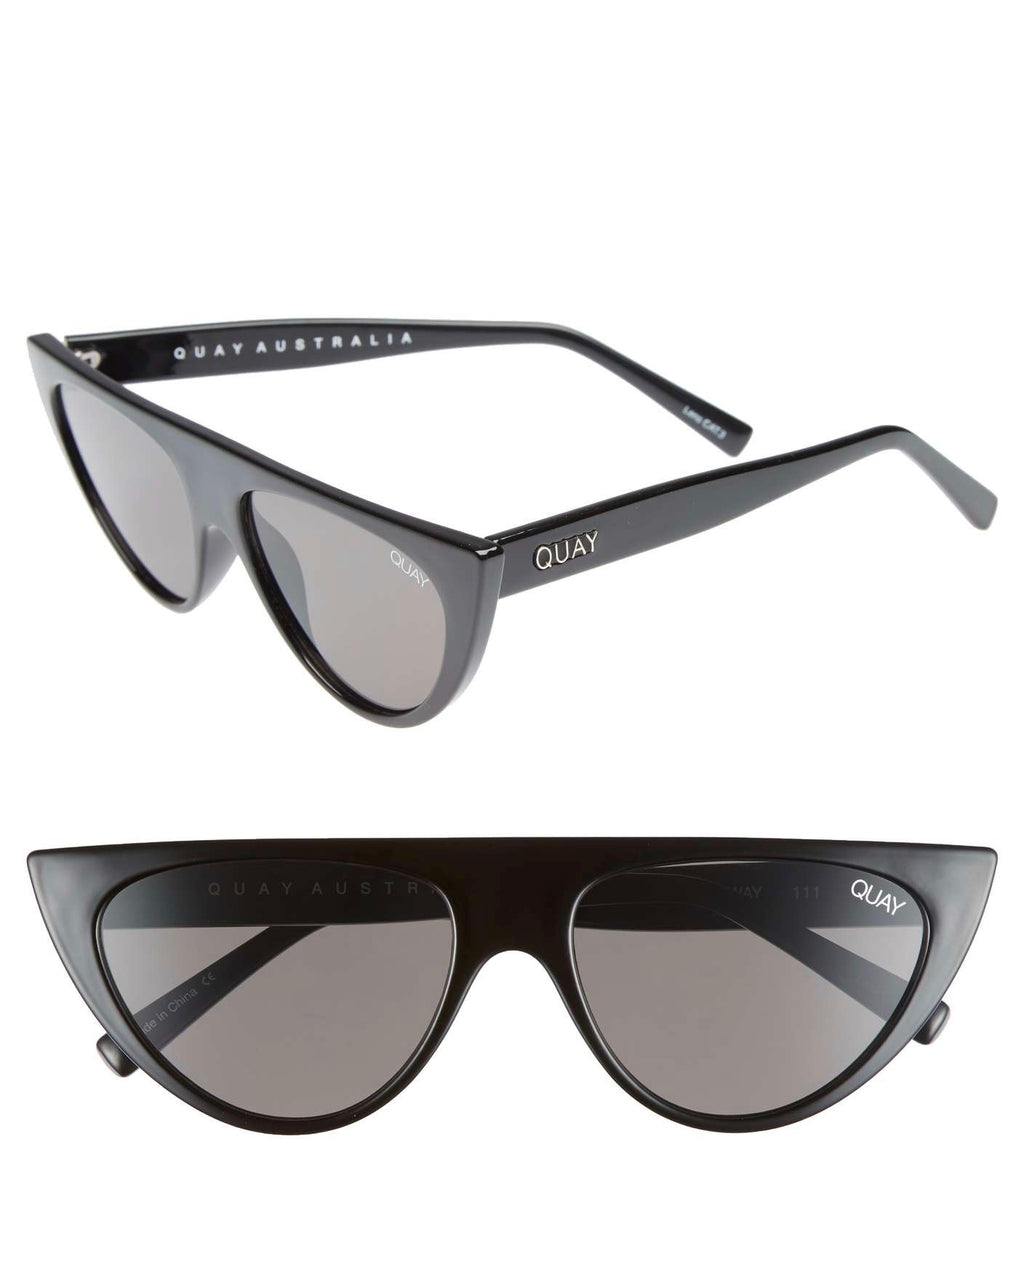 Quay Australia x sofia richi - run away 56mm shield sunglasses - black/smoke